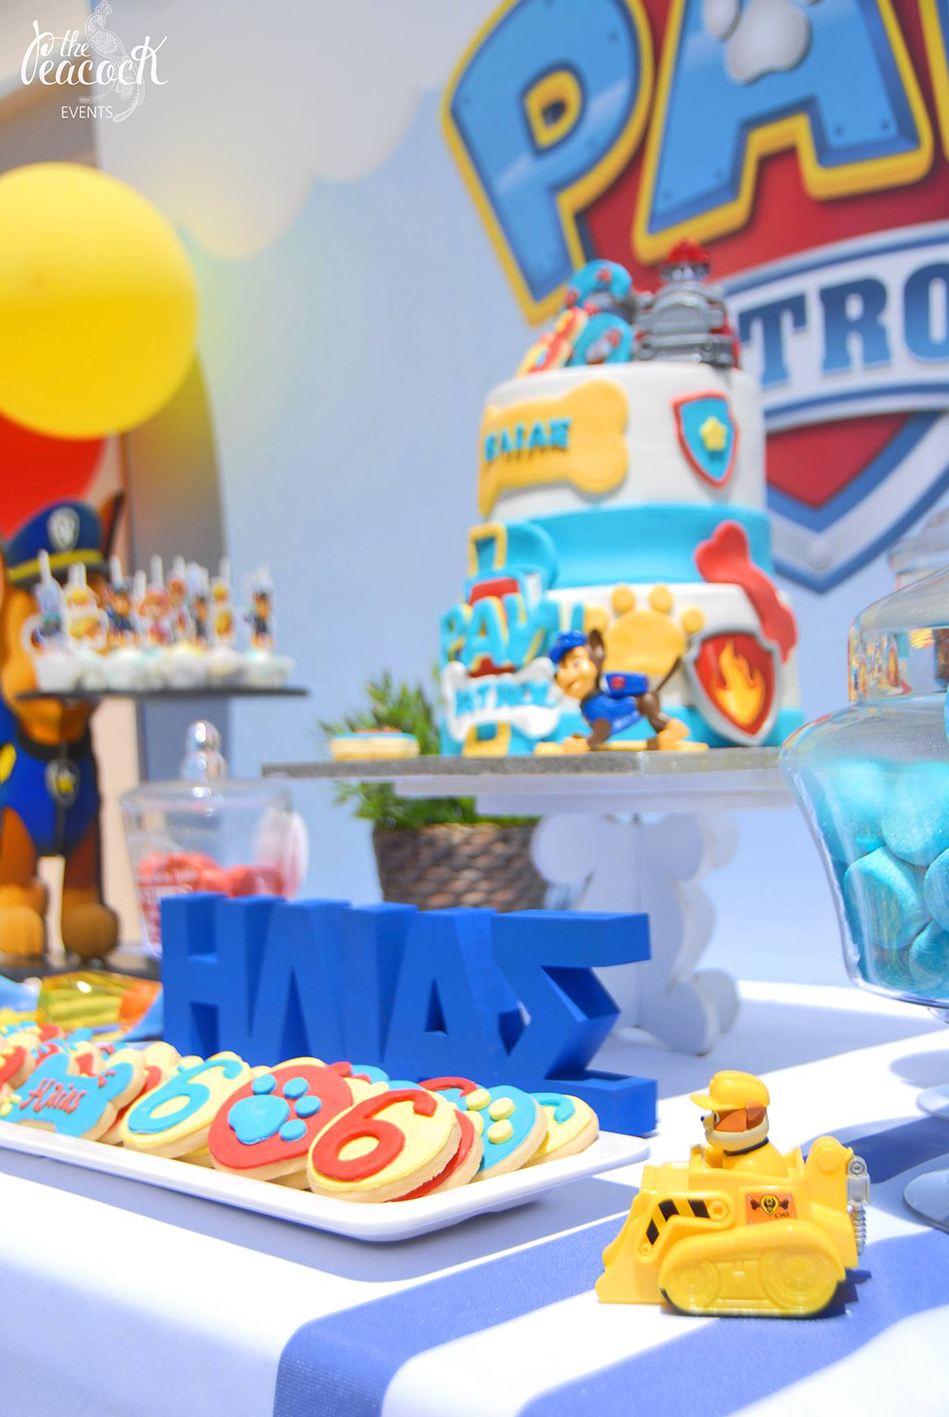 paw patrol birthday party 6 six years old candy bar marshall ryder chase skye zuma rubble rocky sweets cake fondant 3d letters name cookies cake pops marshmallows toys stripes blue white runner balloons yellow red sweet stand wooden custom themed backdrop πο πατρολ καντι μπαρ παρτι παρτυ γενεθλια εξι 6 ετων χρονων αγορι γραμματα μπισκοτα τουρτα με ζαχαροπαστα ριγε πλατη με θεματικη εκτυπωση μπαλονια χρωματα μπλε κοκκινο κιτρινο ασπρο τραπεζι με γλυκα κερασματα καπκεικς κεικ ποπς διοργανωση στησιμο εκδηλωση